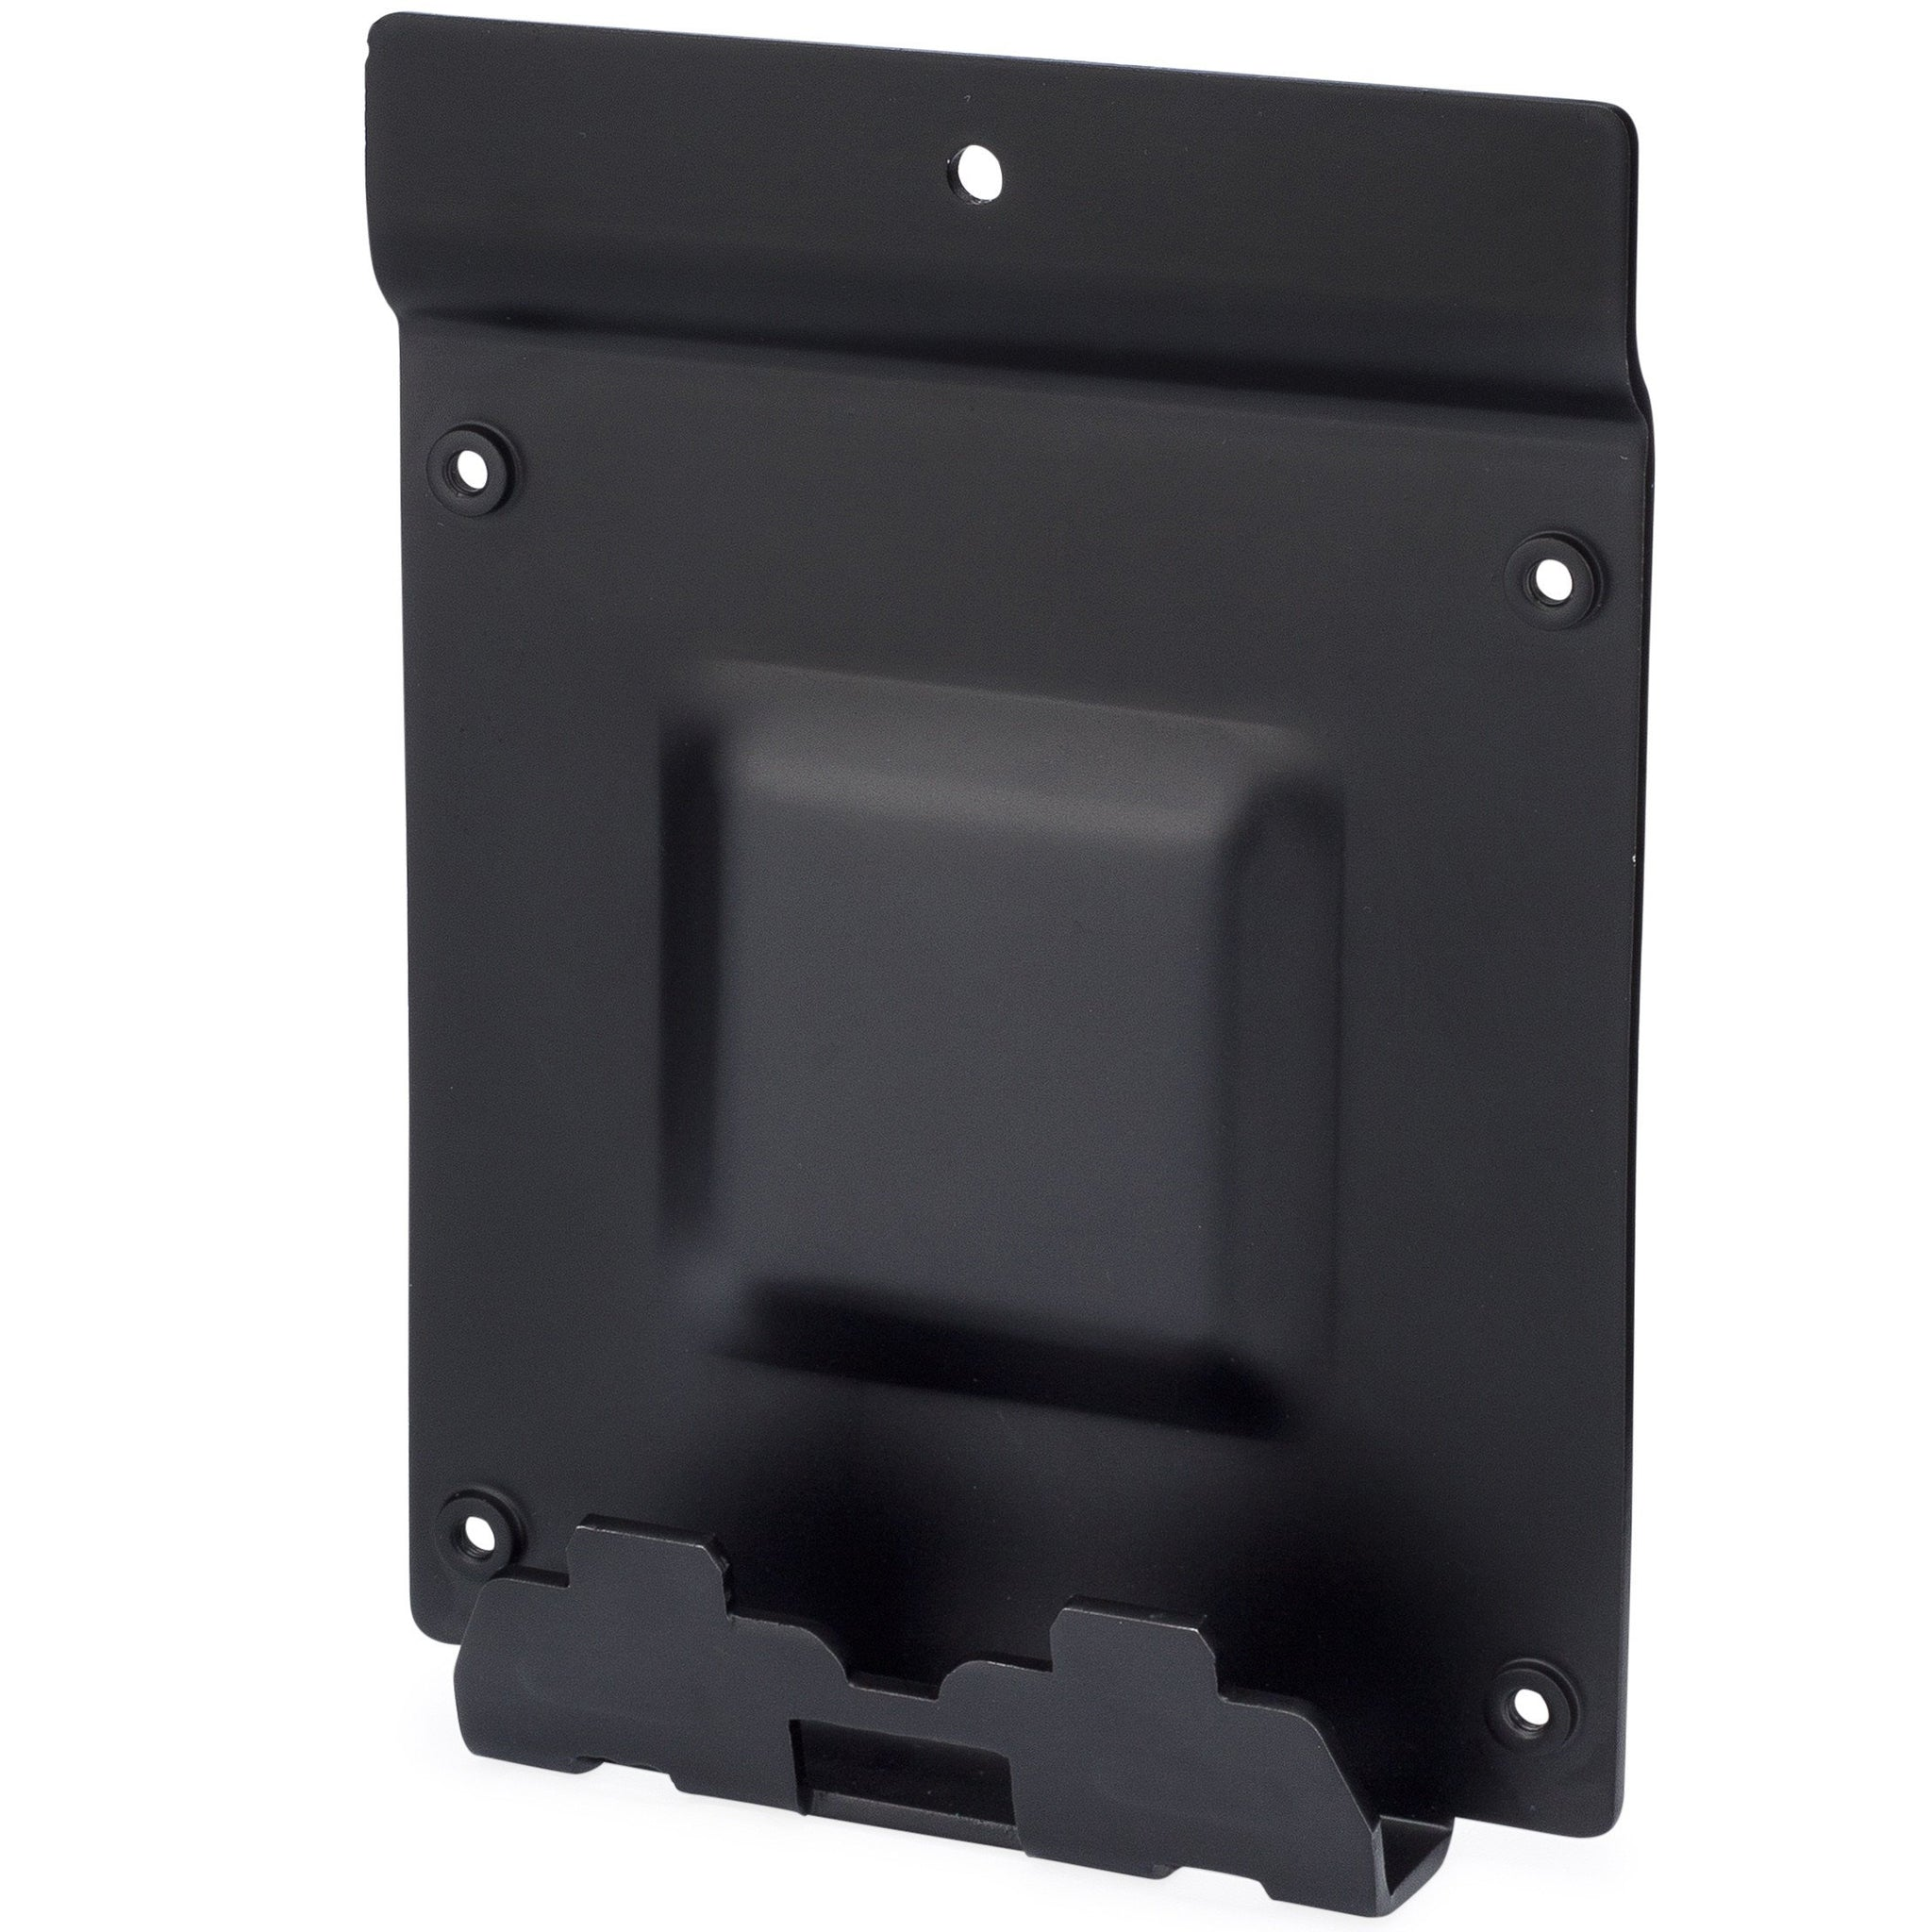 VESA Adapter Bracket for HP 32-Inch Monitors